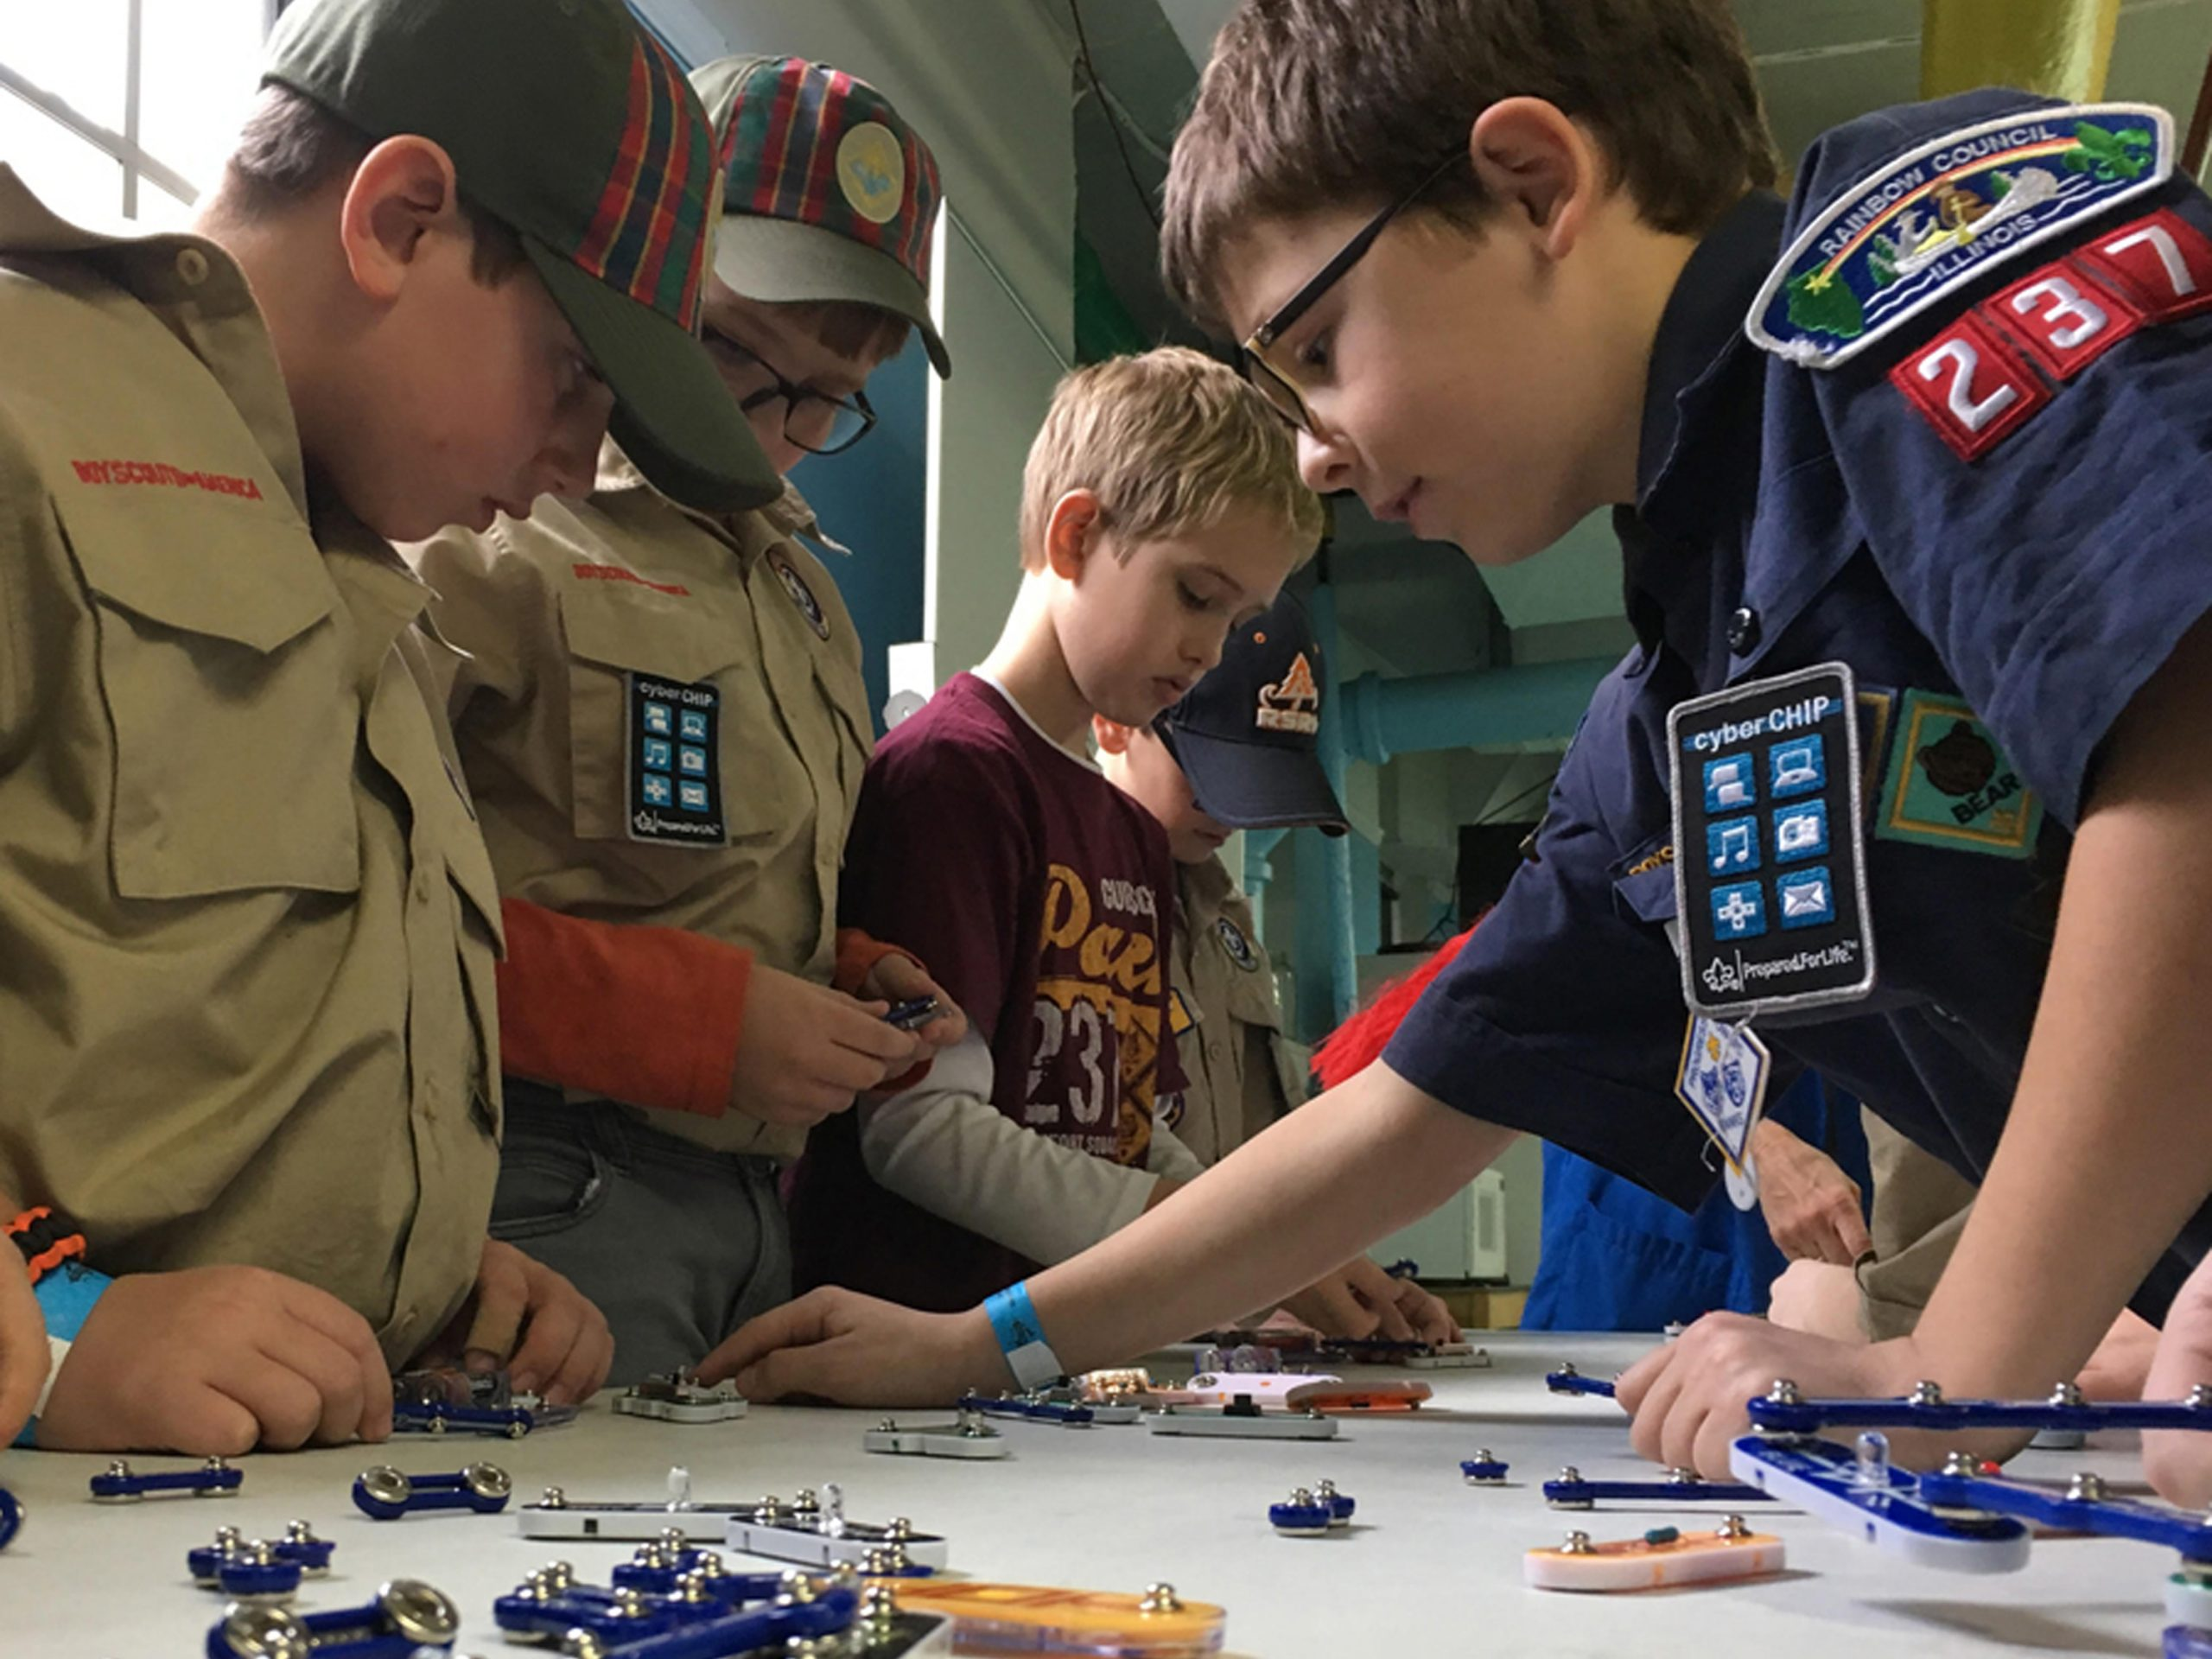 A local Boy Scout troop participates in engineering camp activities. Photo: SciTech Museum